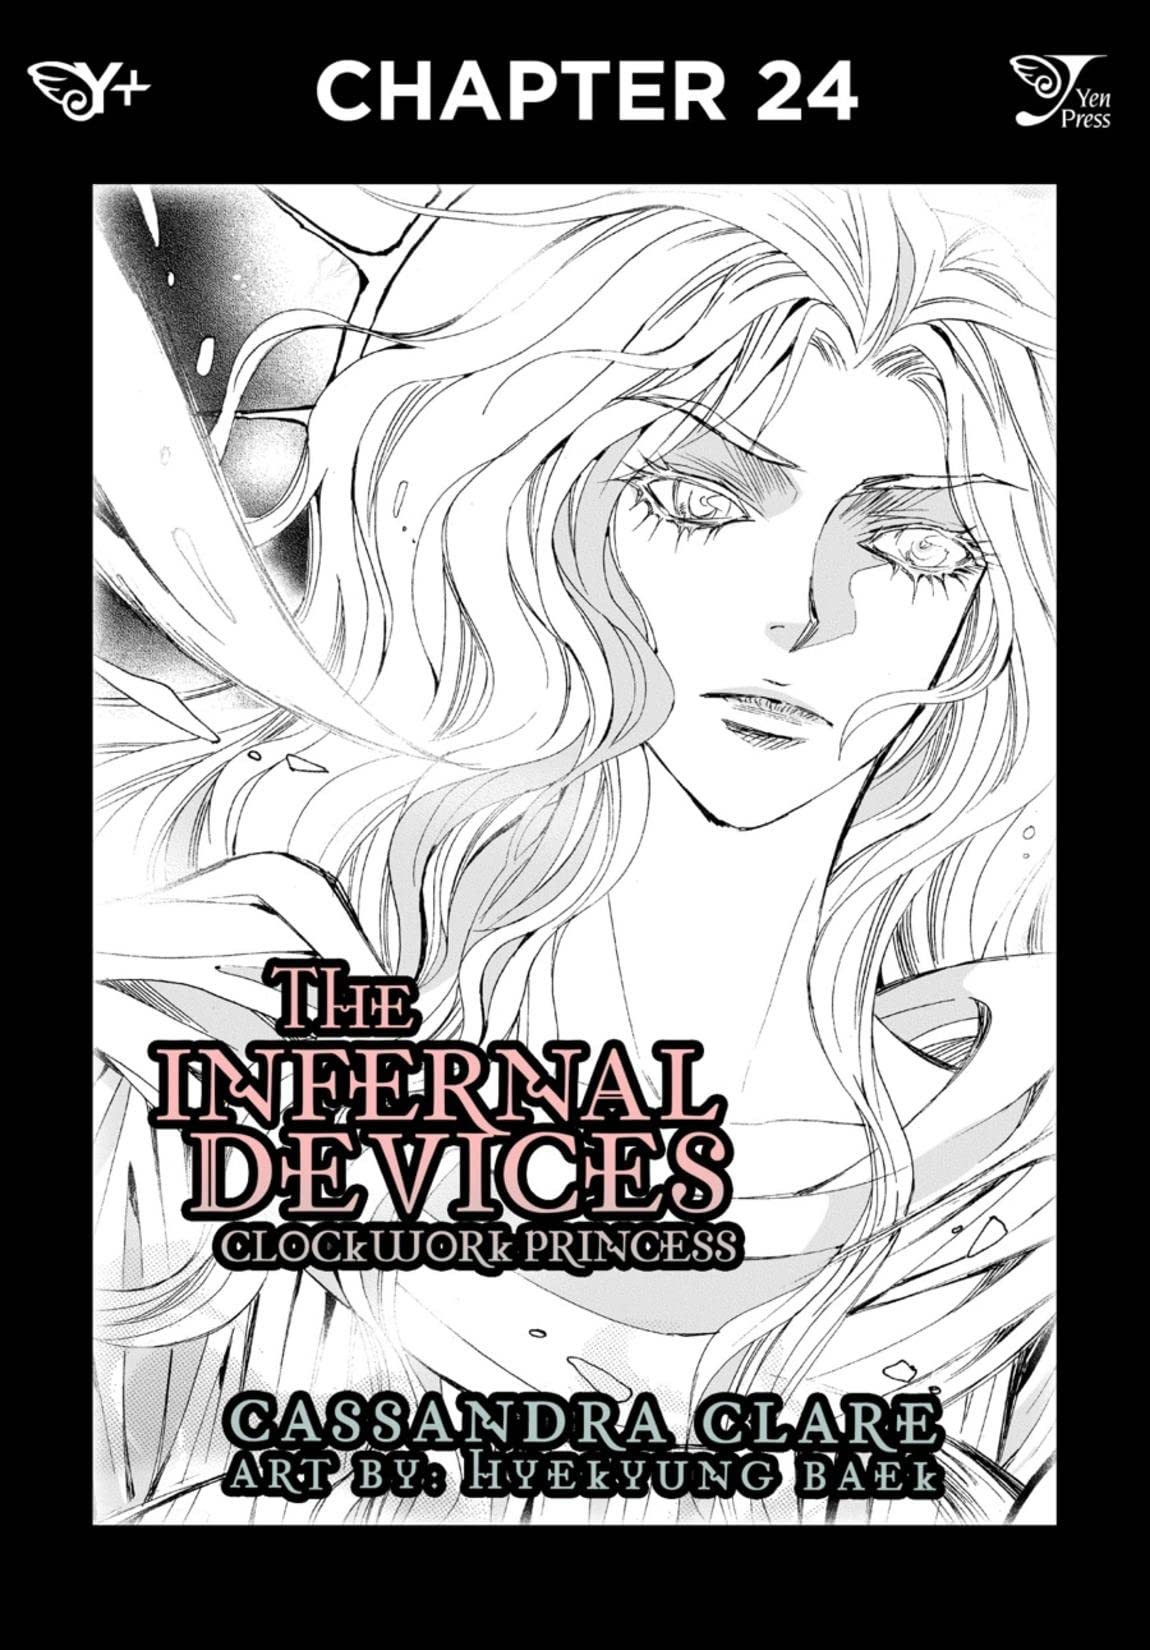 The Infernal Devices: Clockwork Princess #24